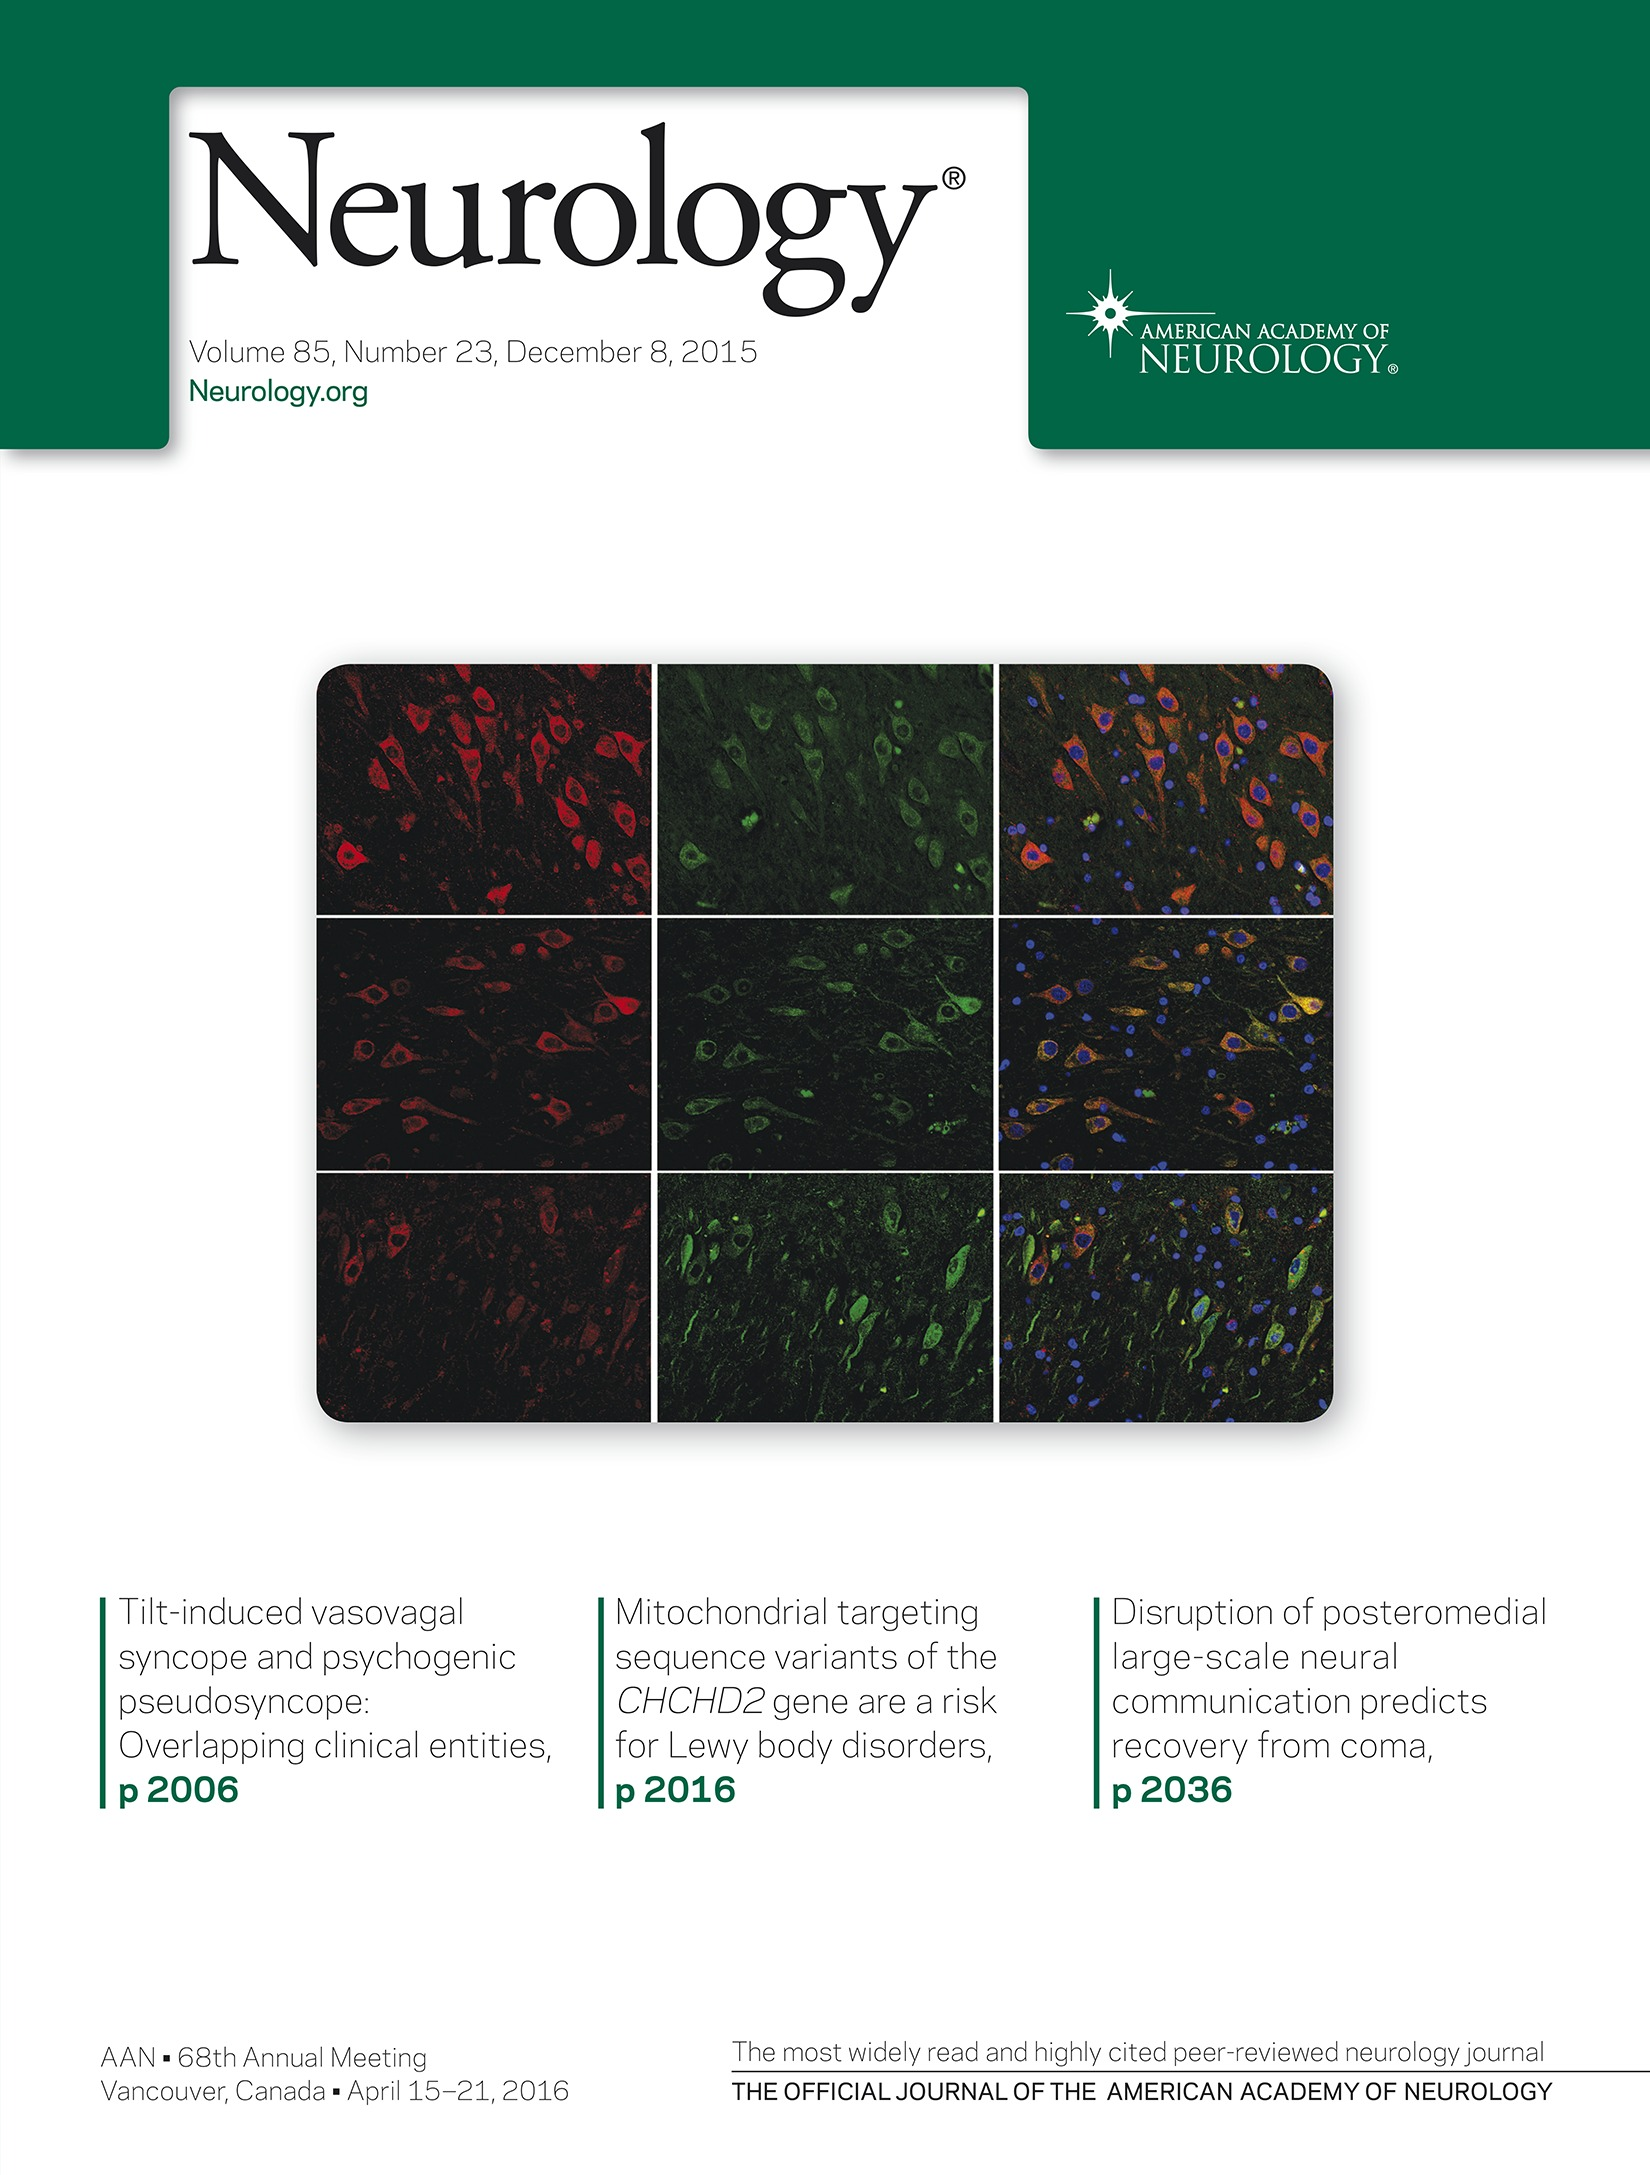 Disruption of posteromedial large-scale neural communication